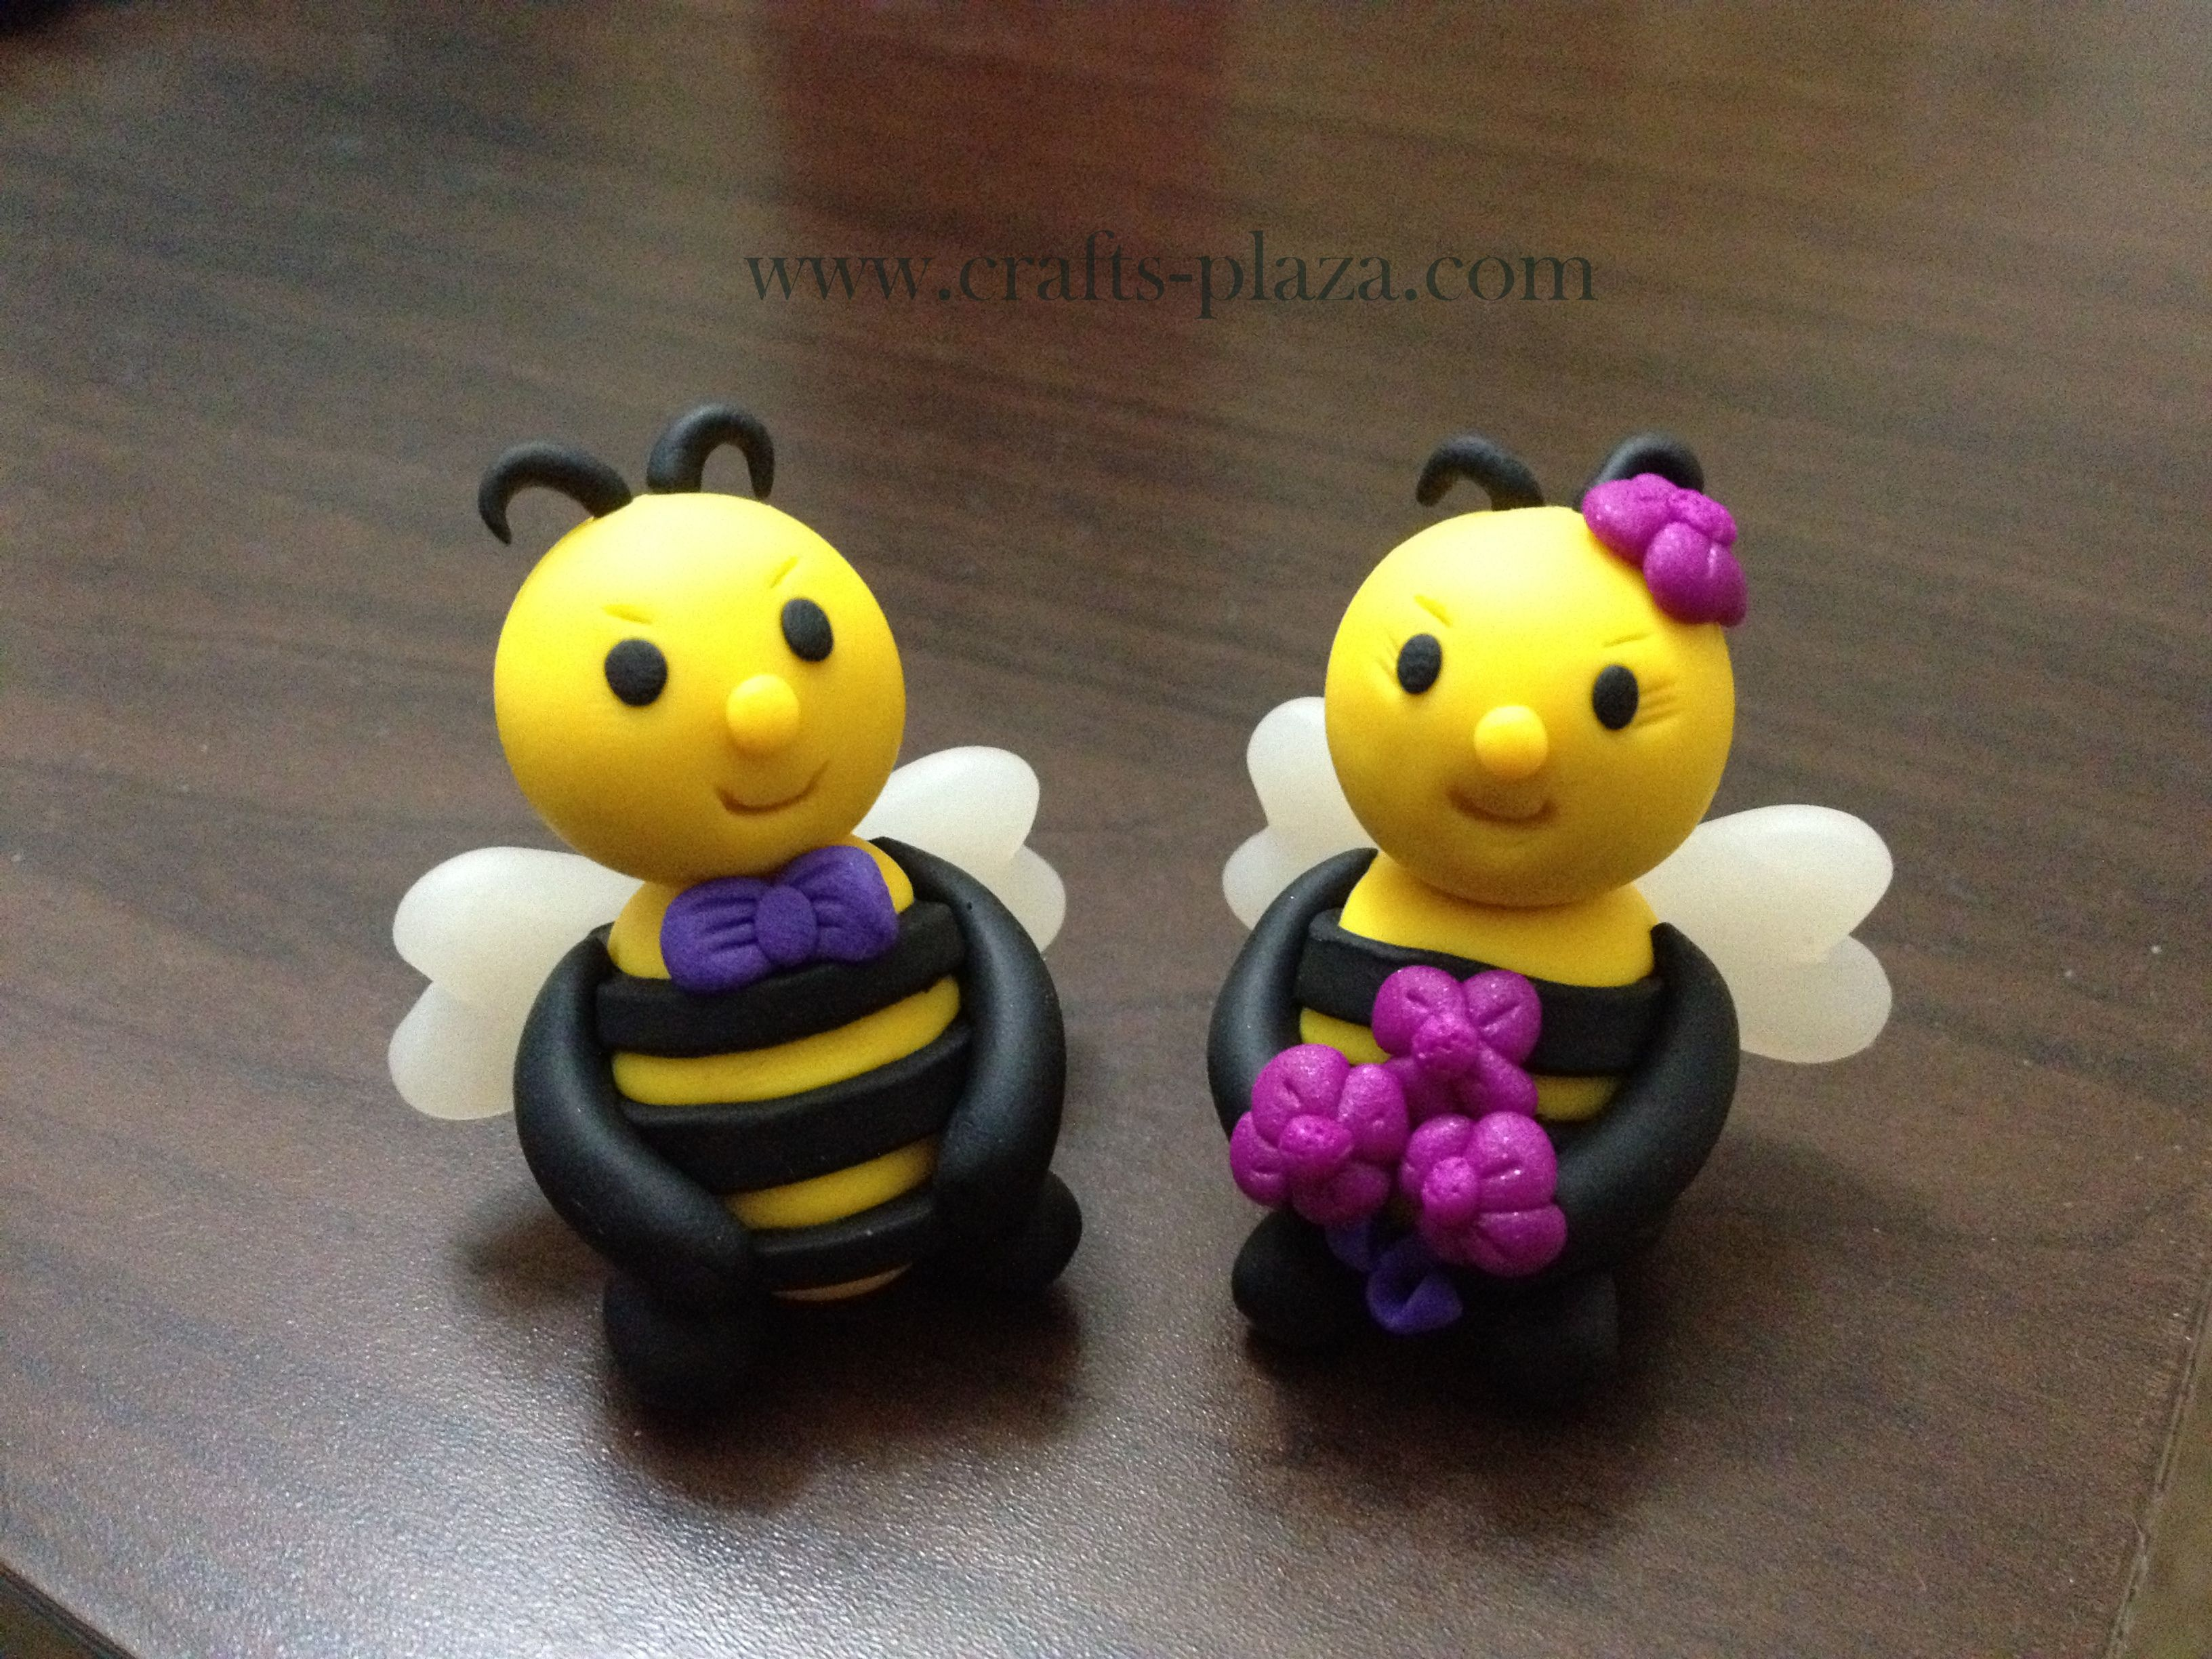 Ble Bee Wedding Cake Topper On Www Crafts Plaza